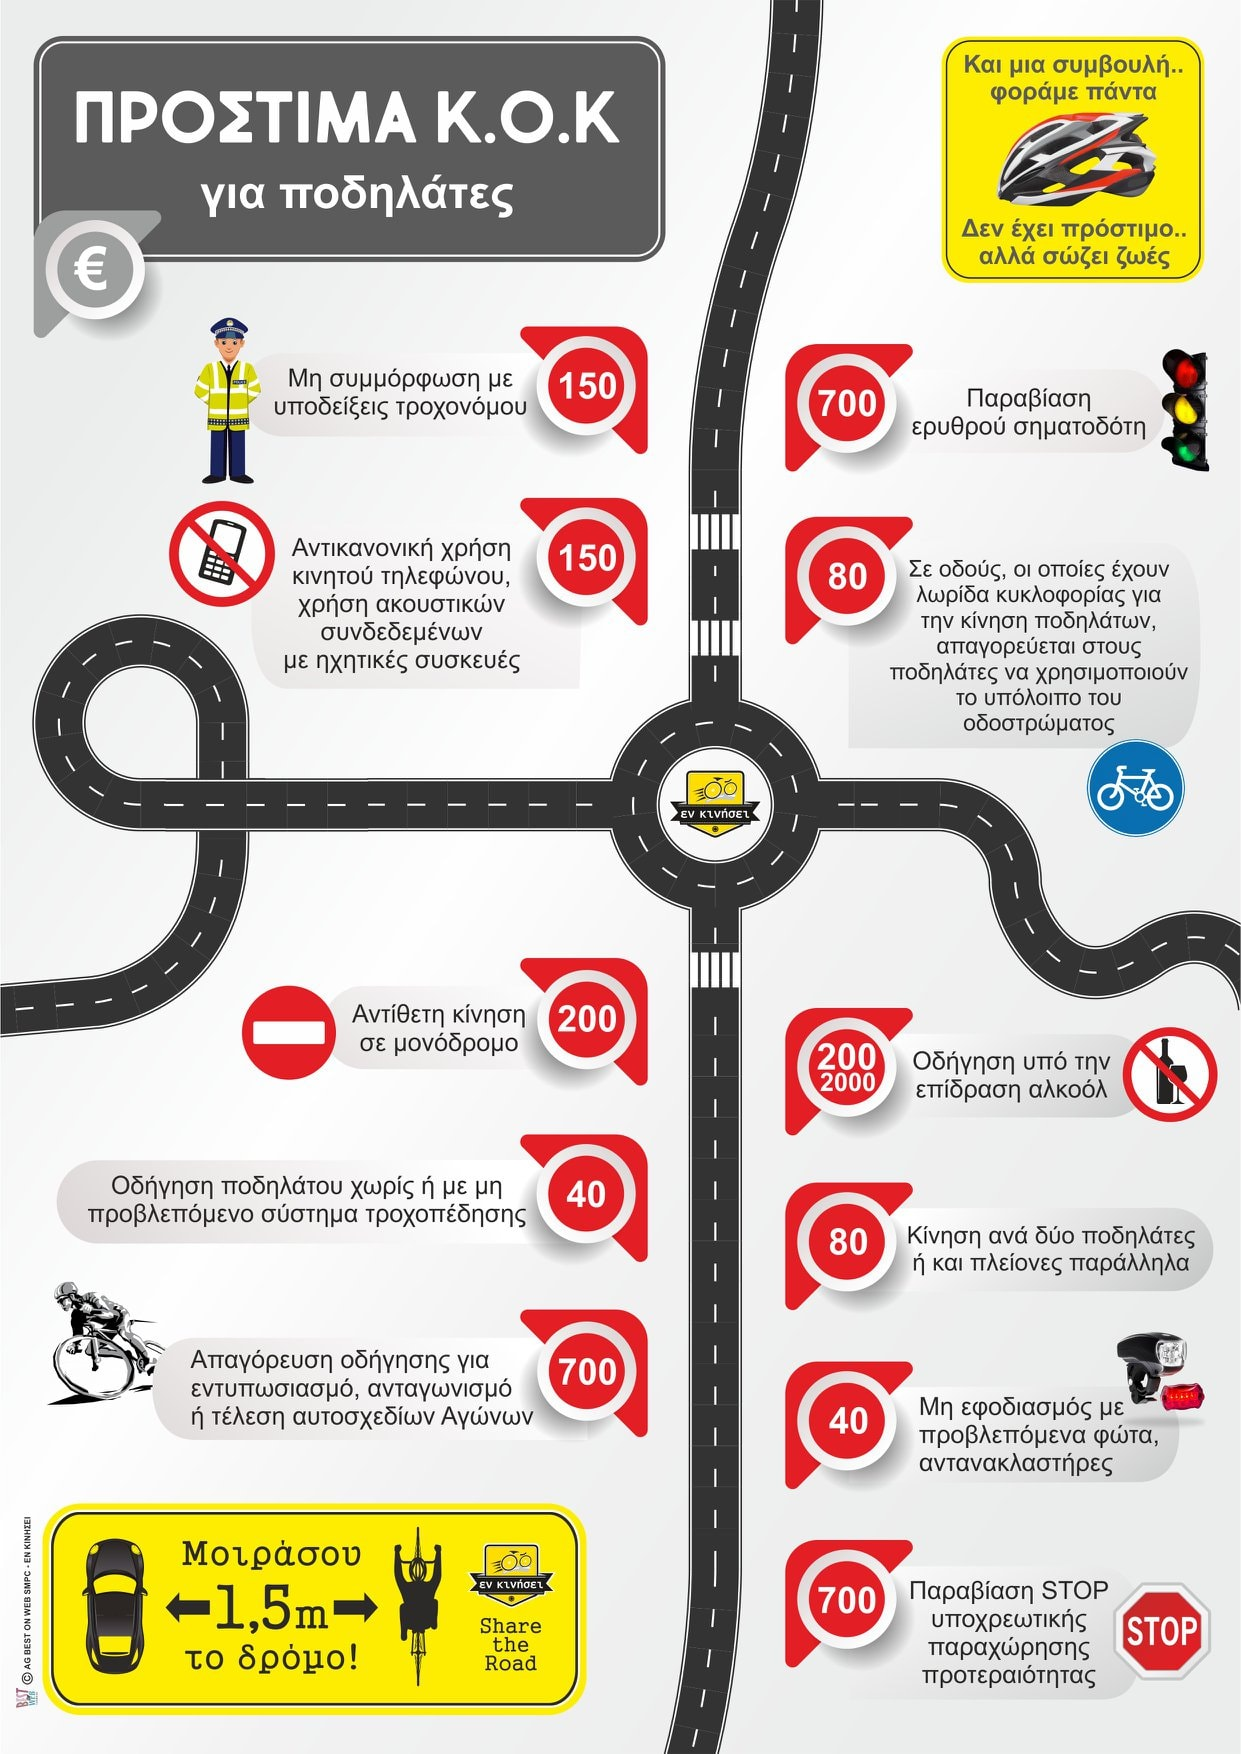 Traffic Rules and Fines for Cyclists